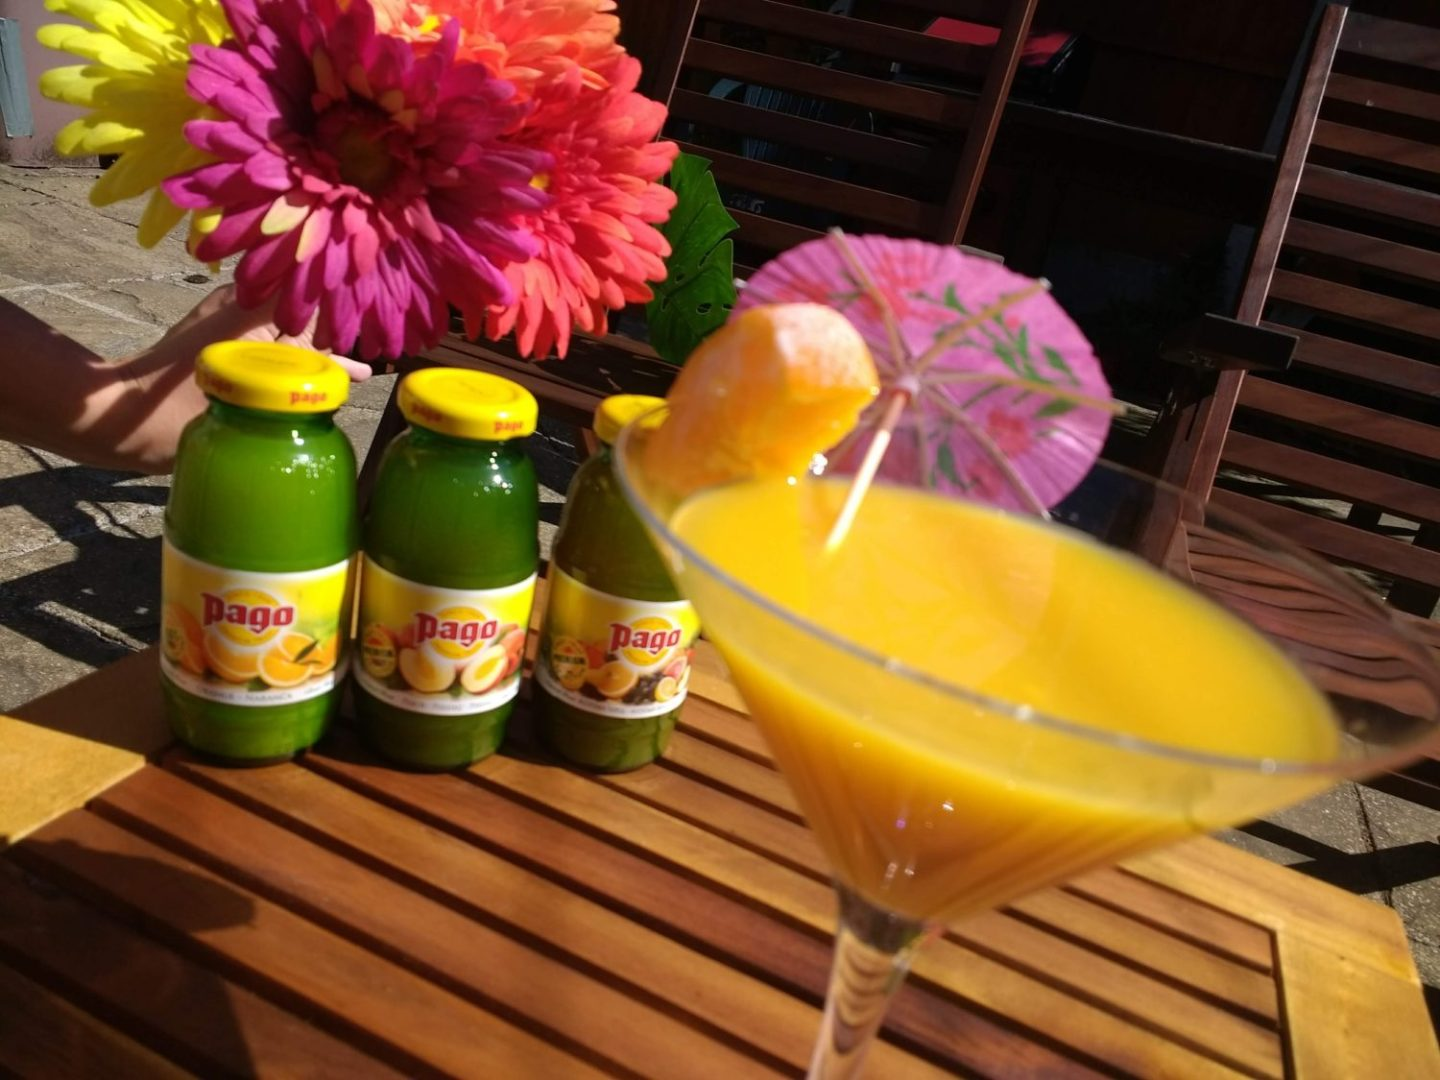 Summer Cocktails with Pago Fruit Juices*